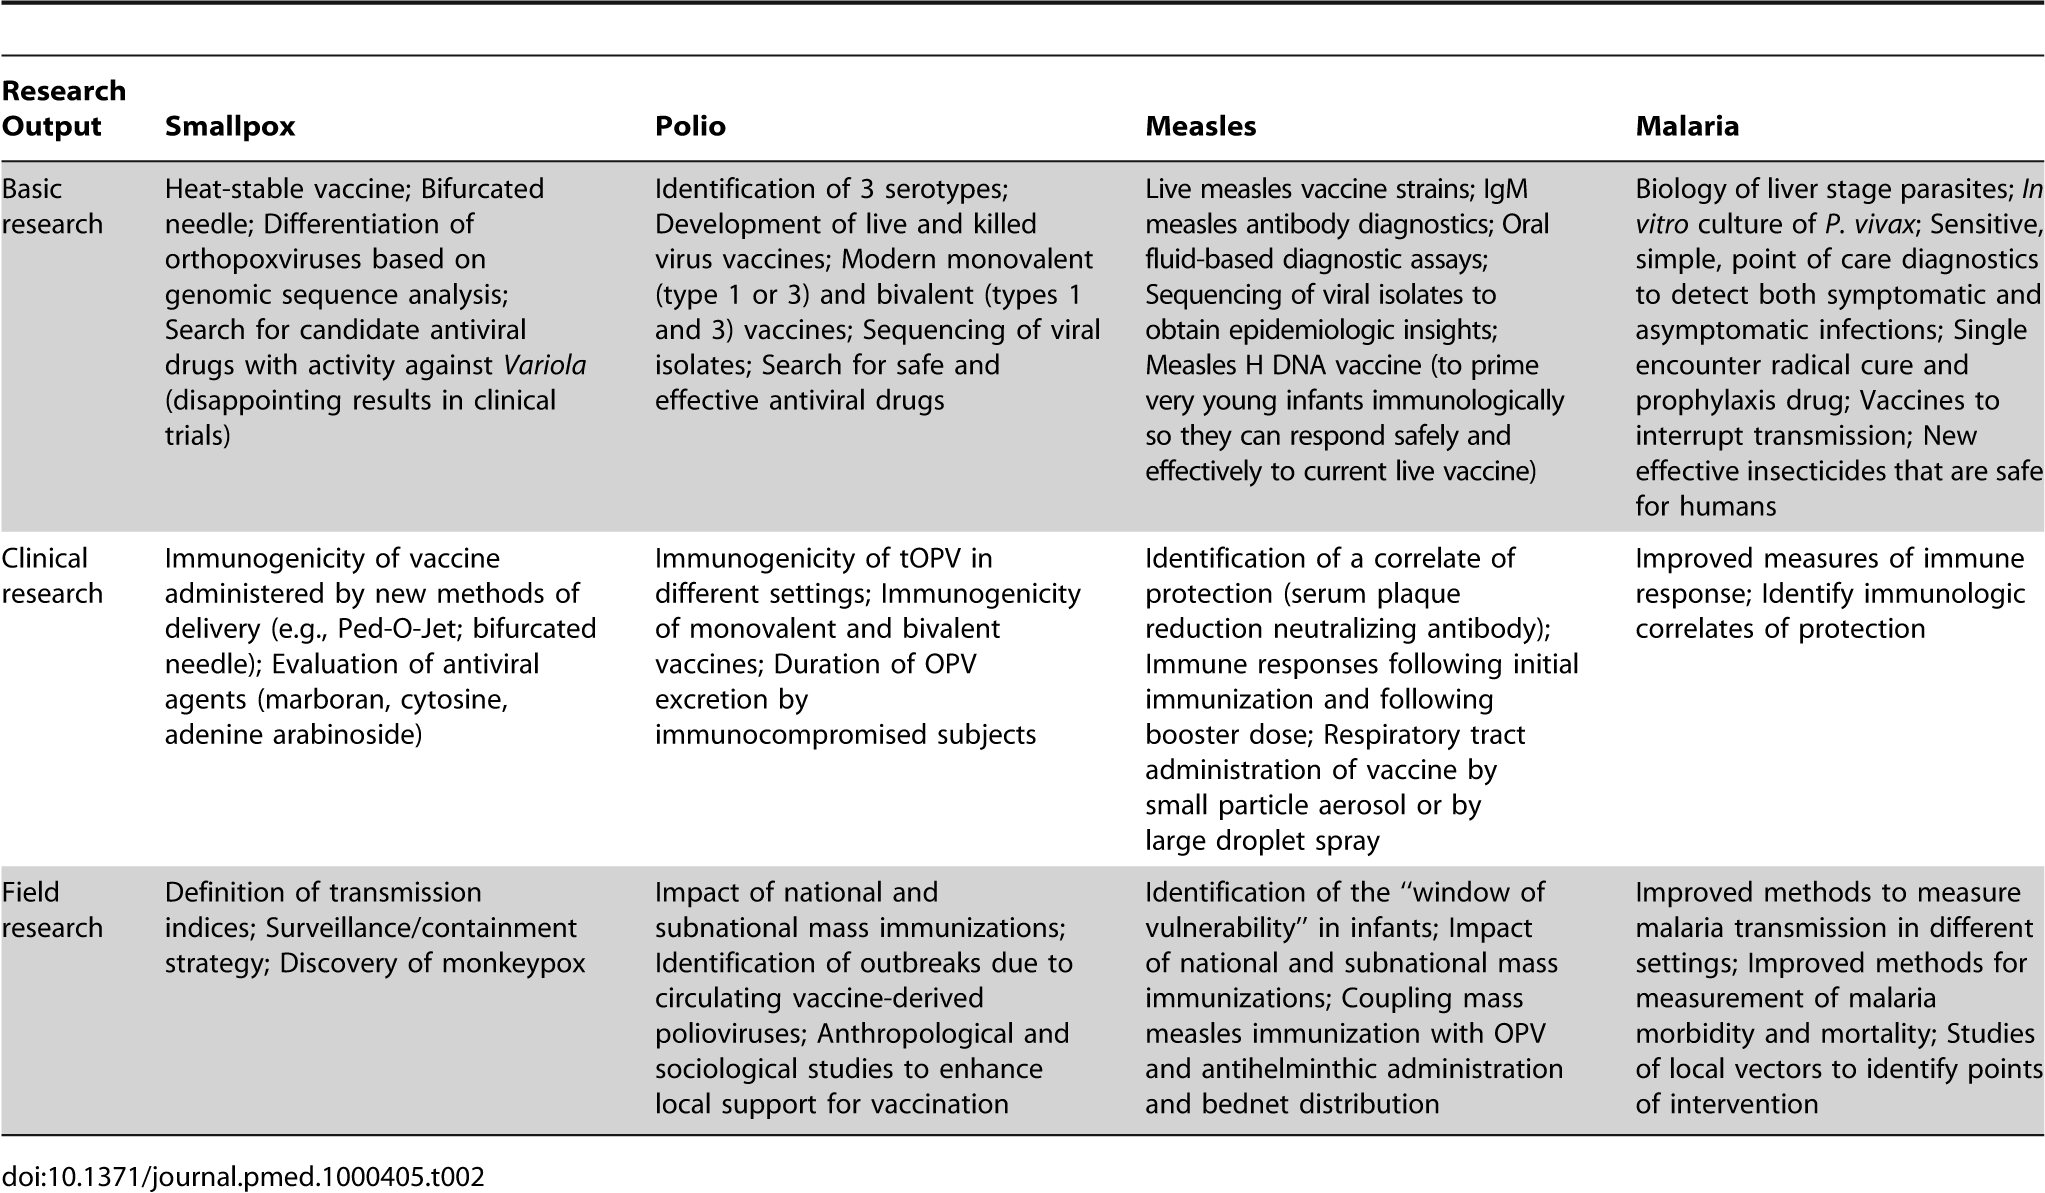 A comparison of the inherent salient features of smallpox, polio, measles, and malaria infections that favour or impede elimination of the disease and the most effective past and current interventions.